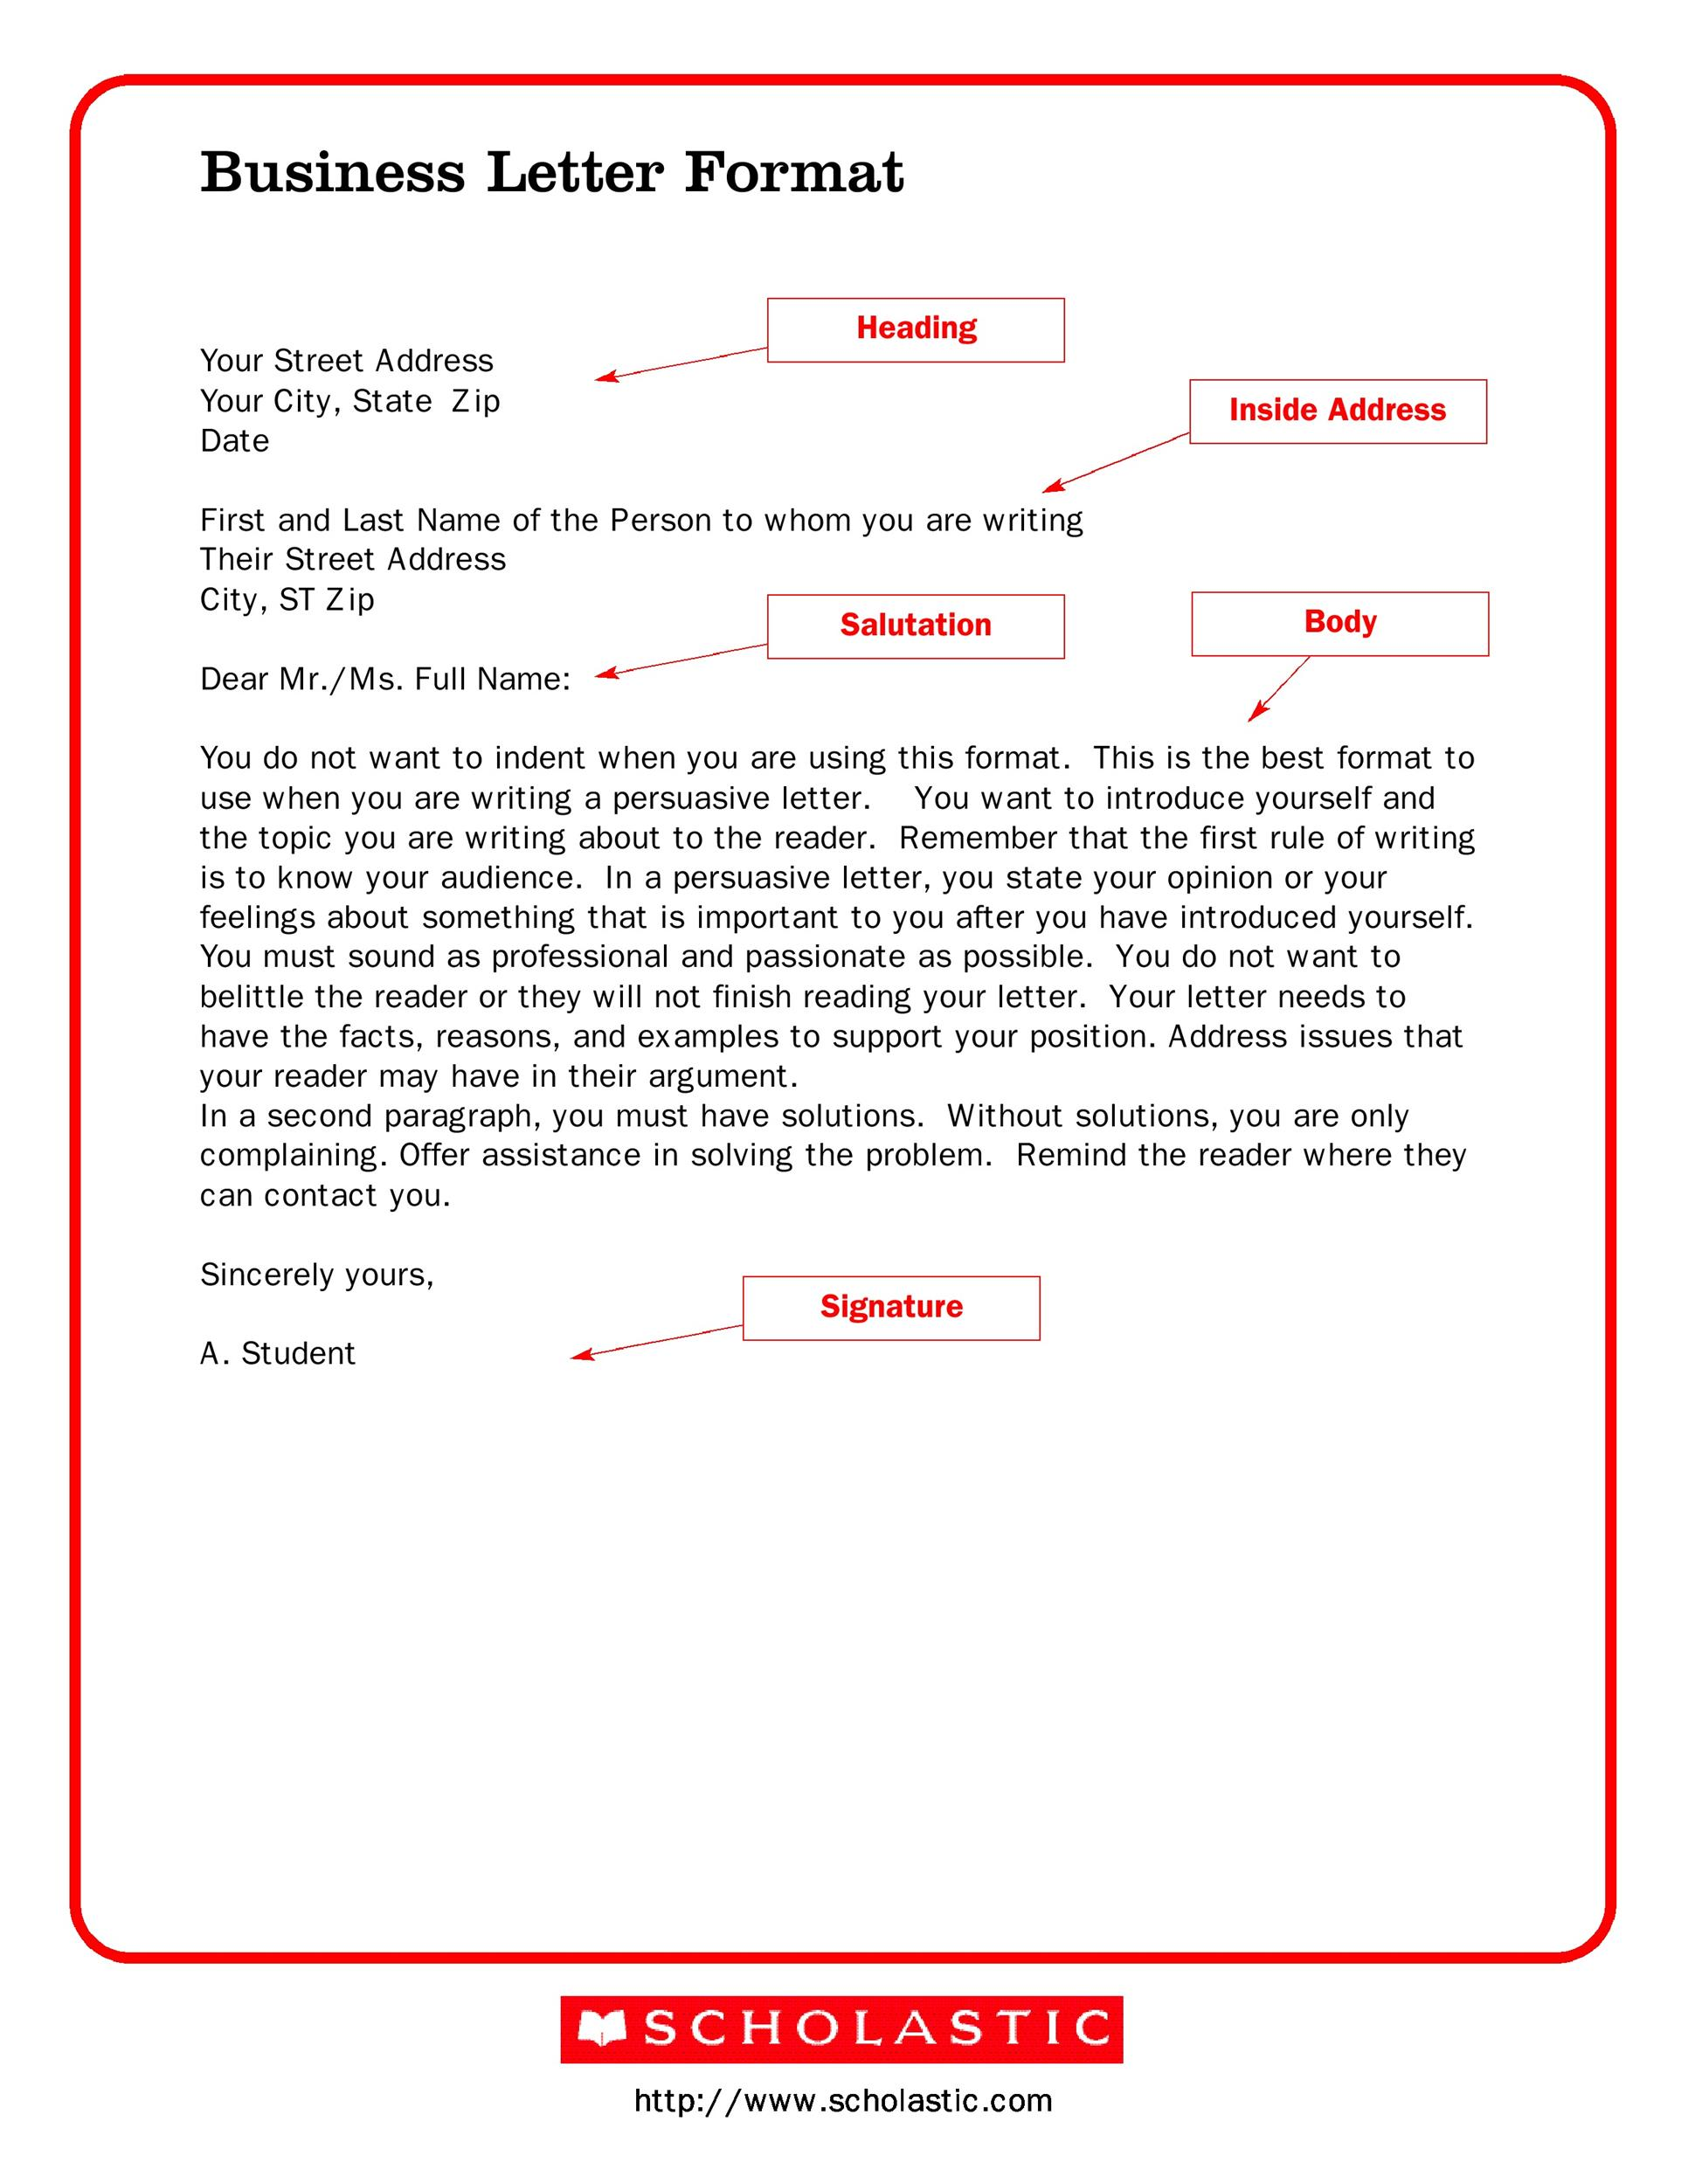 Business letter format sample letter wajeb